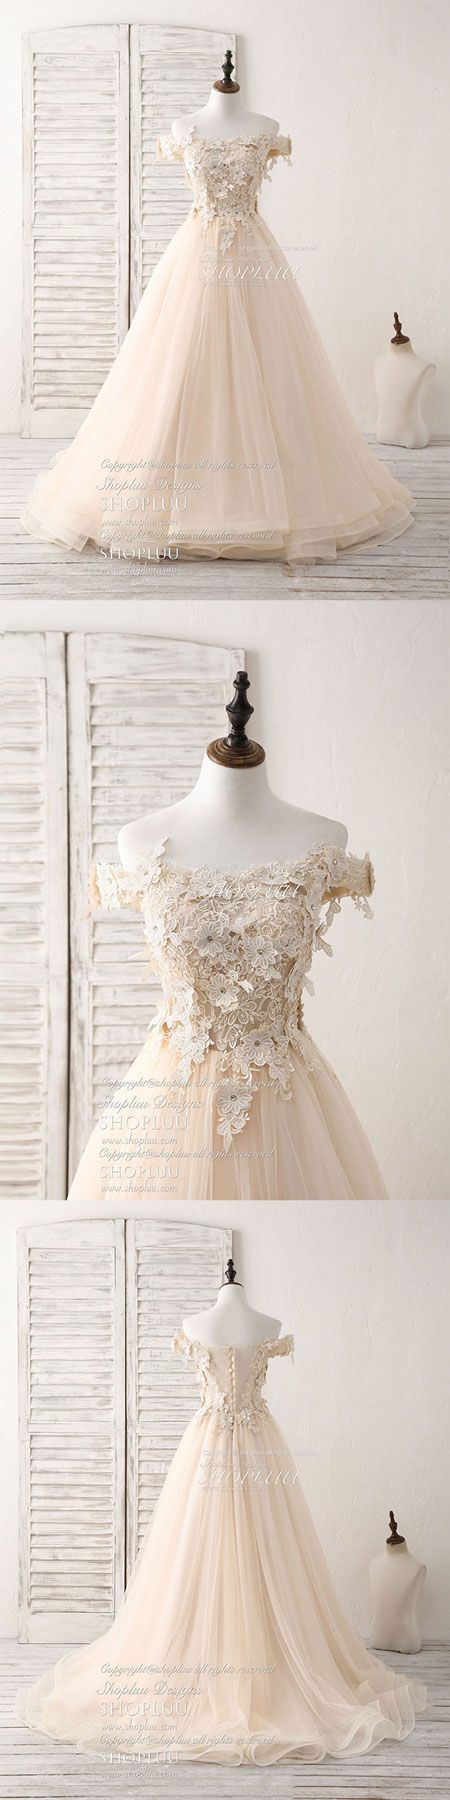 Unique off shoulder lace applique tulle long prom dresses, champagne tulle lace applique evening dress, champagne wedding dress